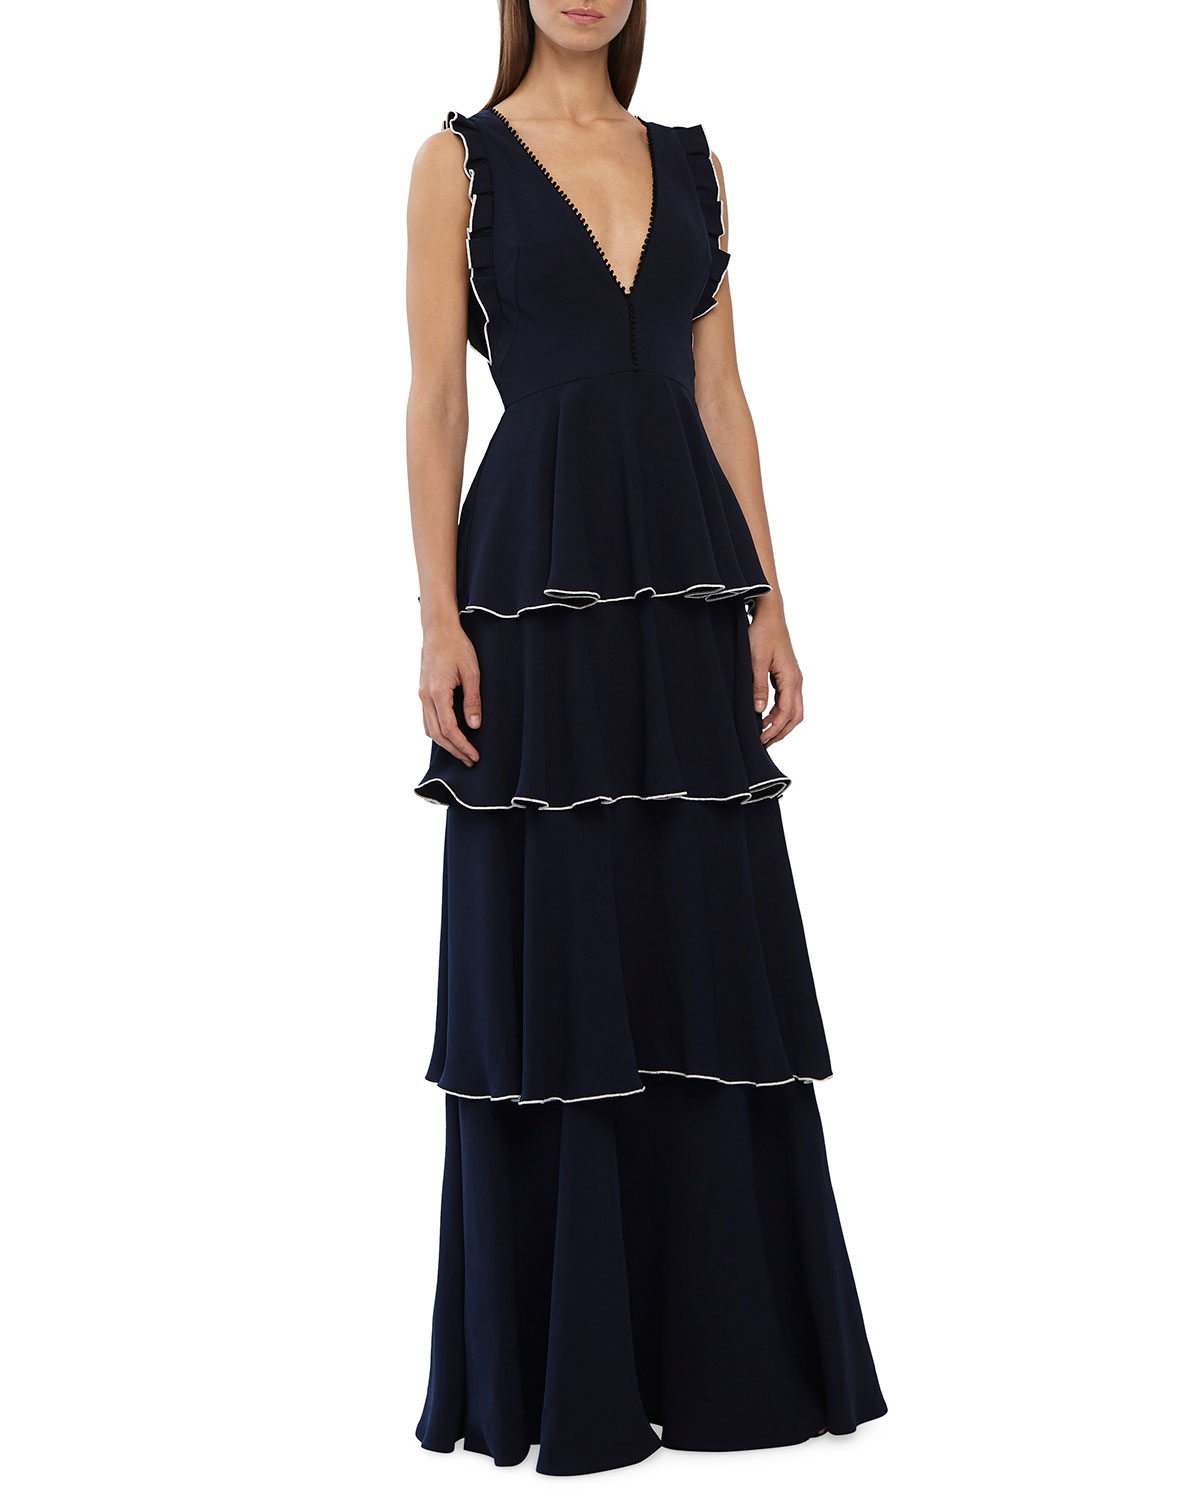 a3272fae5e4f ML Monique Lhuillier Sleeveless V-Neck Layered Crepe A-Line Dress w/ Ruffle